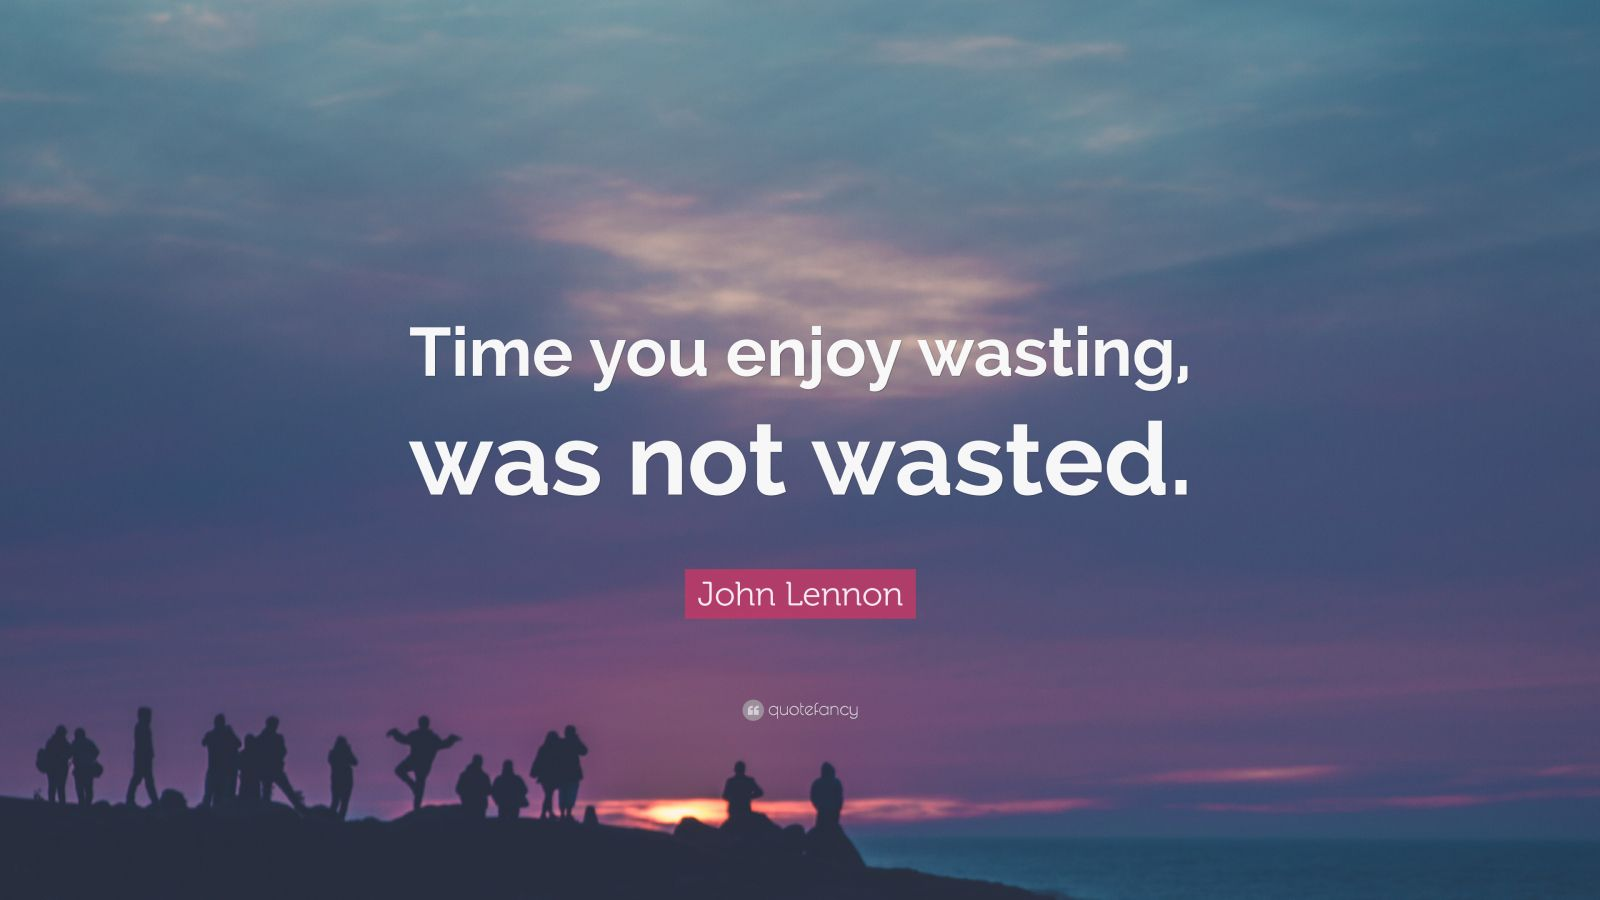 John Lennon Quotes 100 Wallpapers Quotefancy